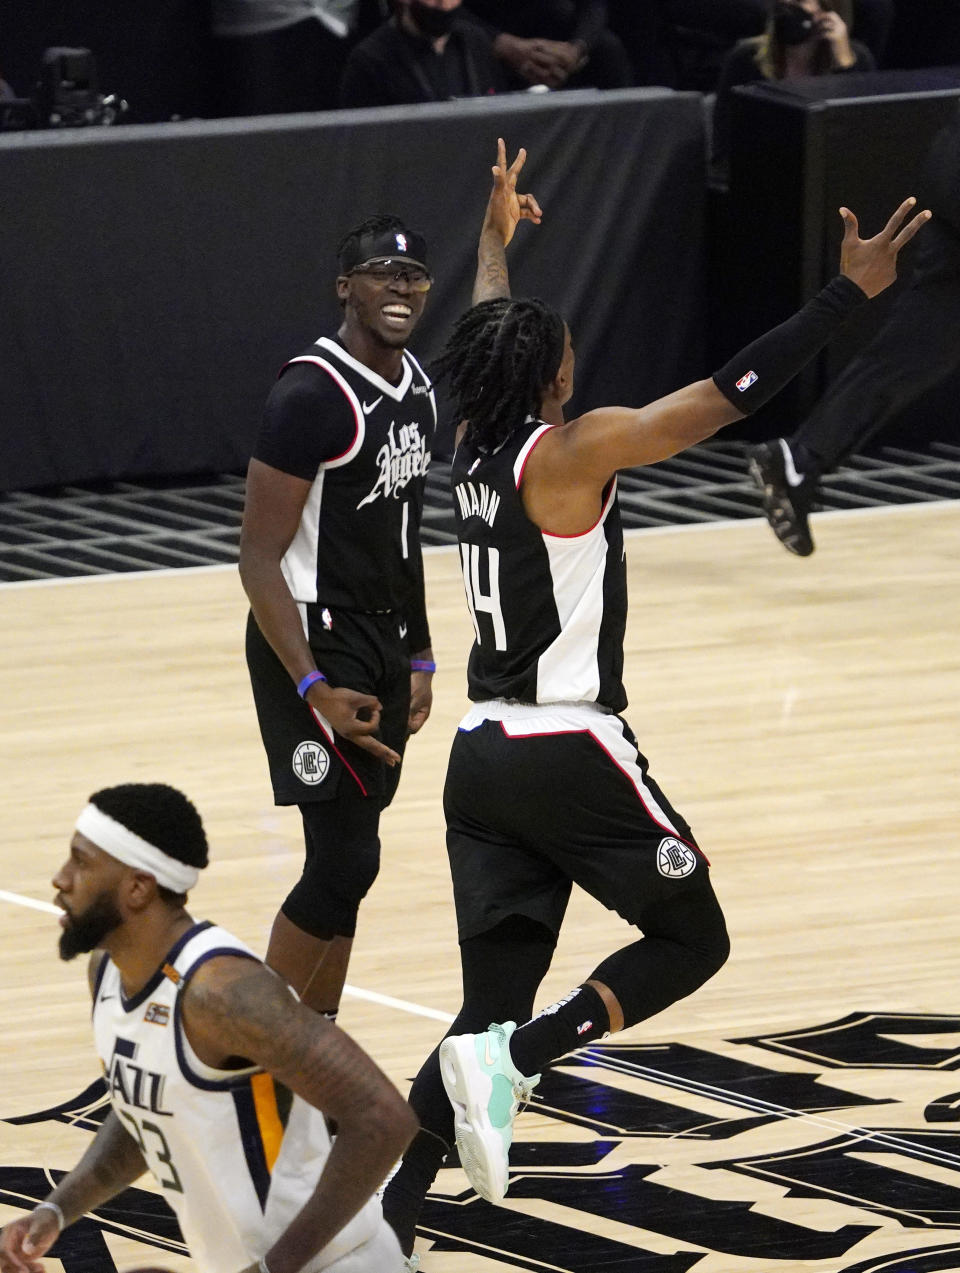 Los Angeles Clippers guard Reggie Jackson, upper left, and guard Terance Mann, right, celebrate after the Clippers scores as Utah Jazz forward Royce O'Neale stands, below, during the second half in Game 6 of a second-round NBA basketball playoff series Friday, June 18, 2021, in Los Angeles. (AP Photo/Mark J. Terrill)